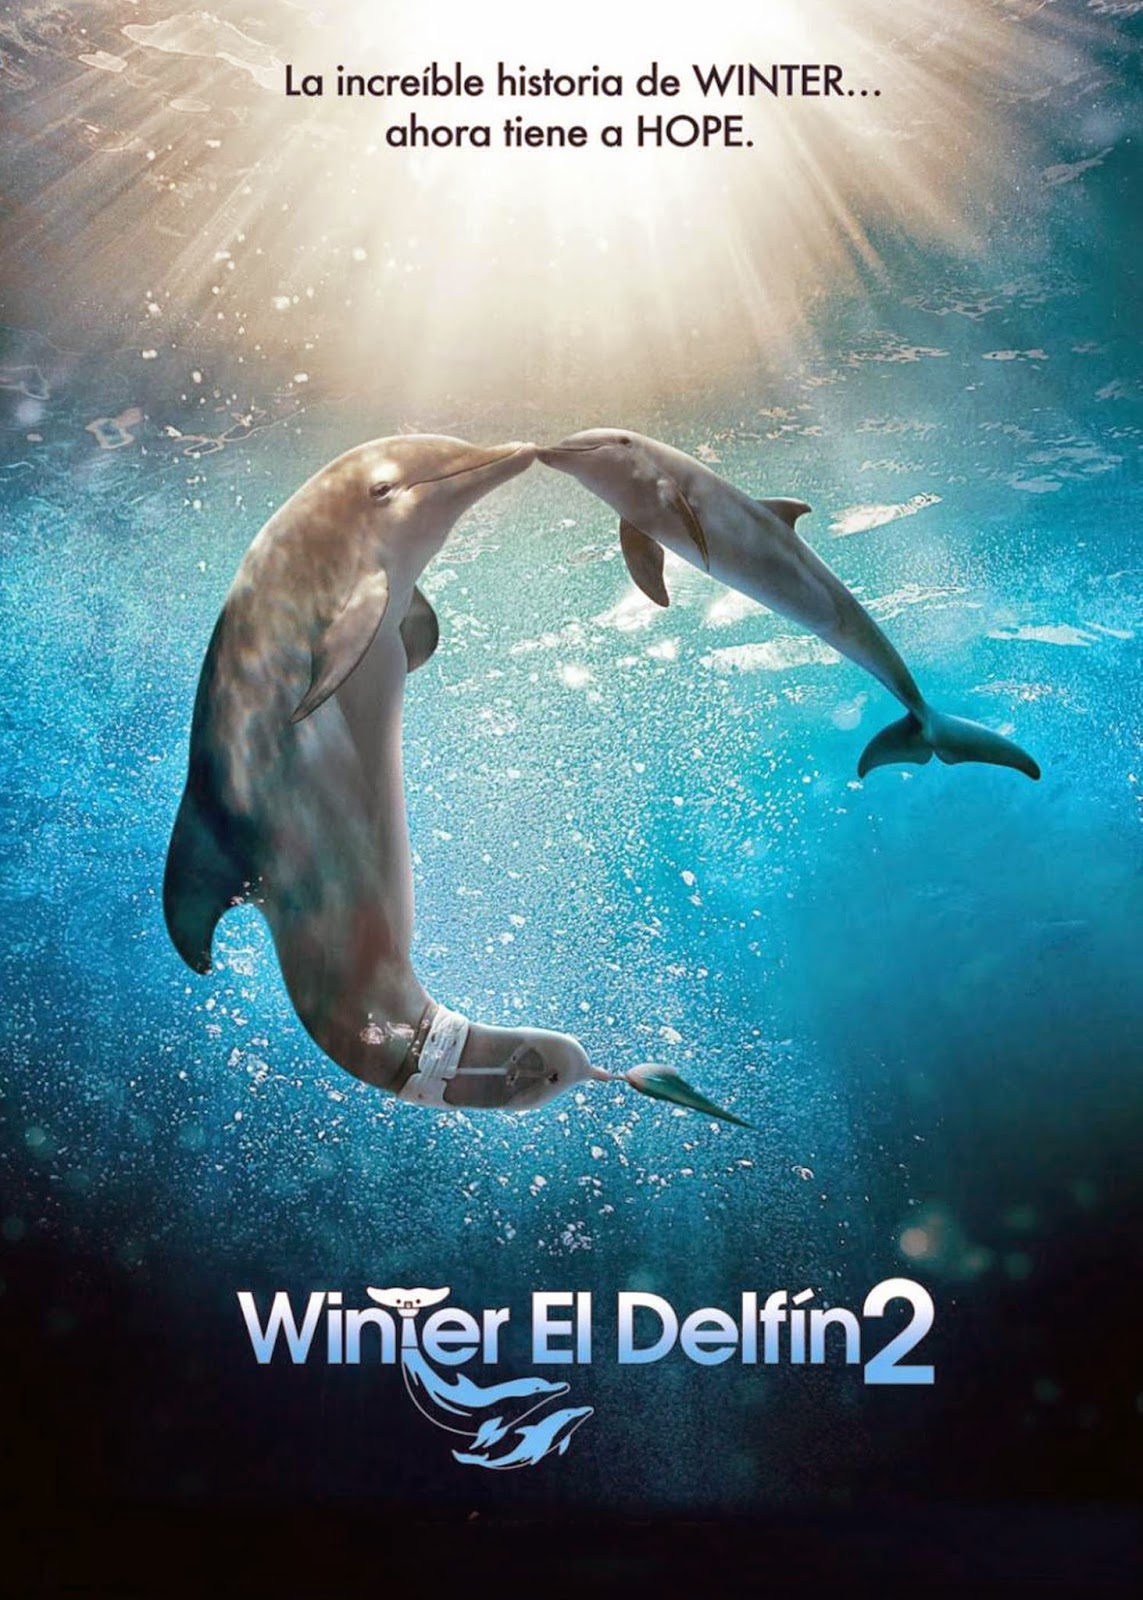 Winter El Delfin 2 (2014) de Charles Martin Smith